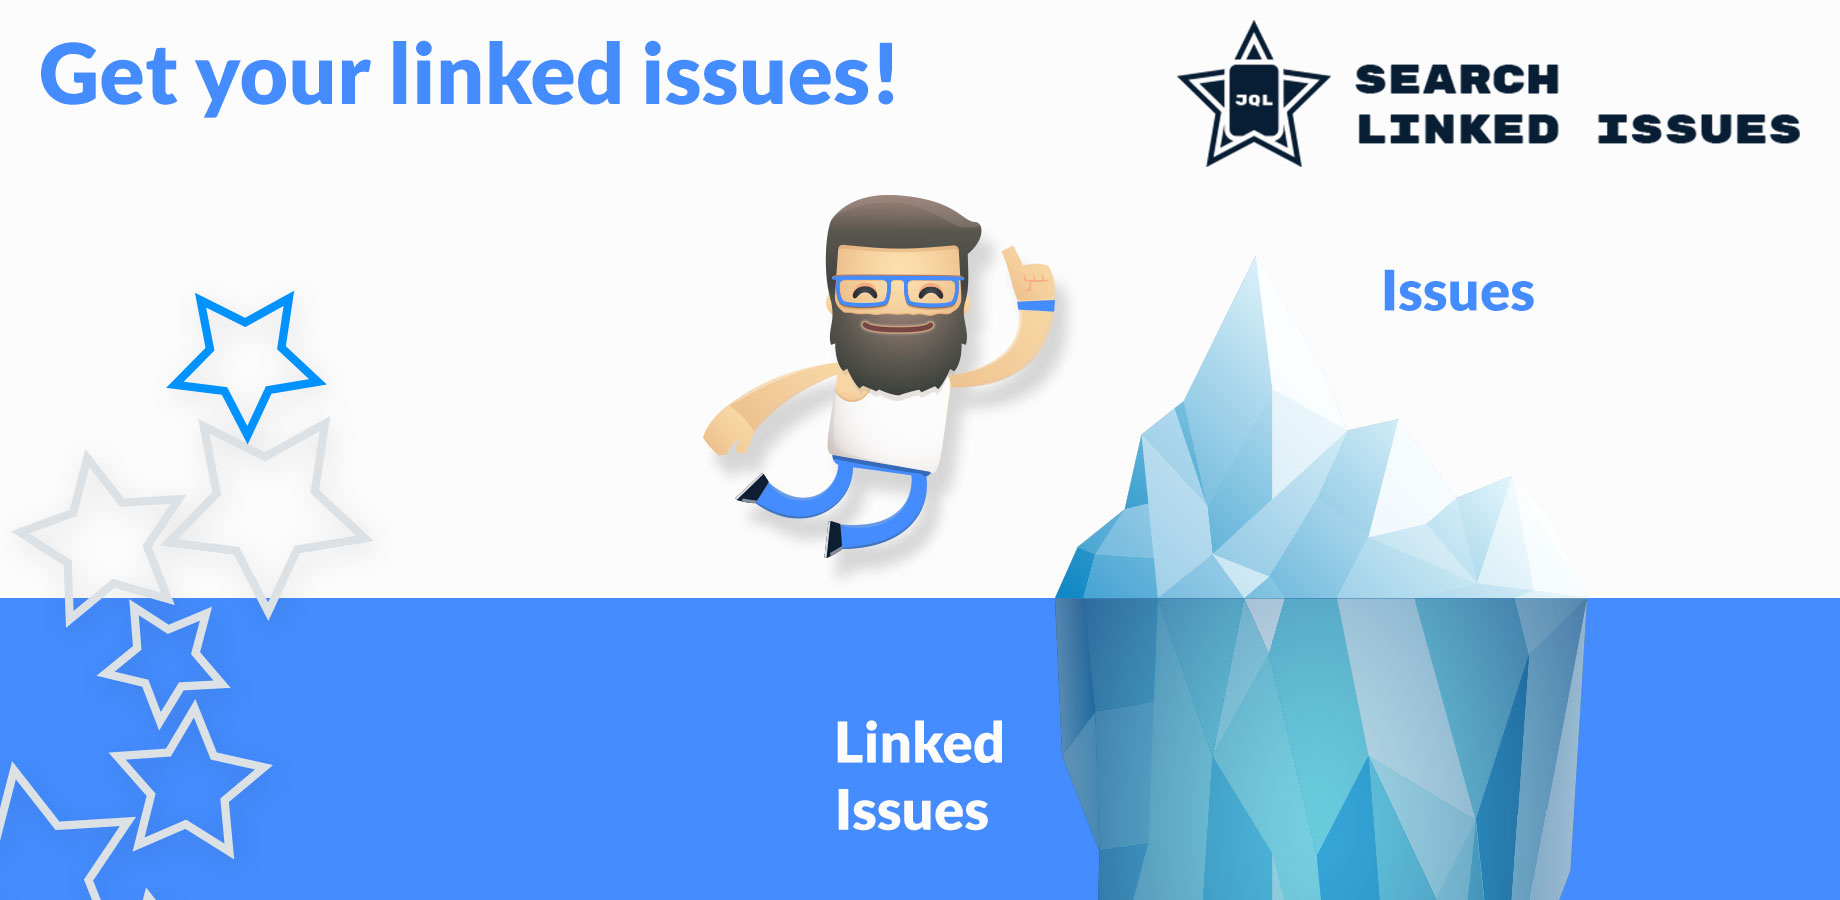 Get your linked issues!